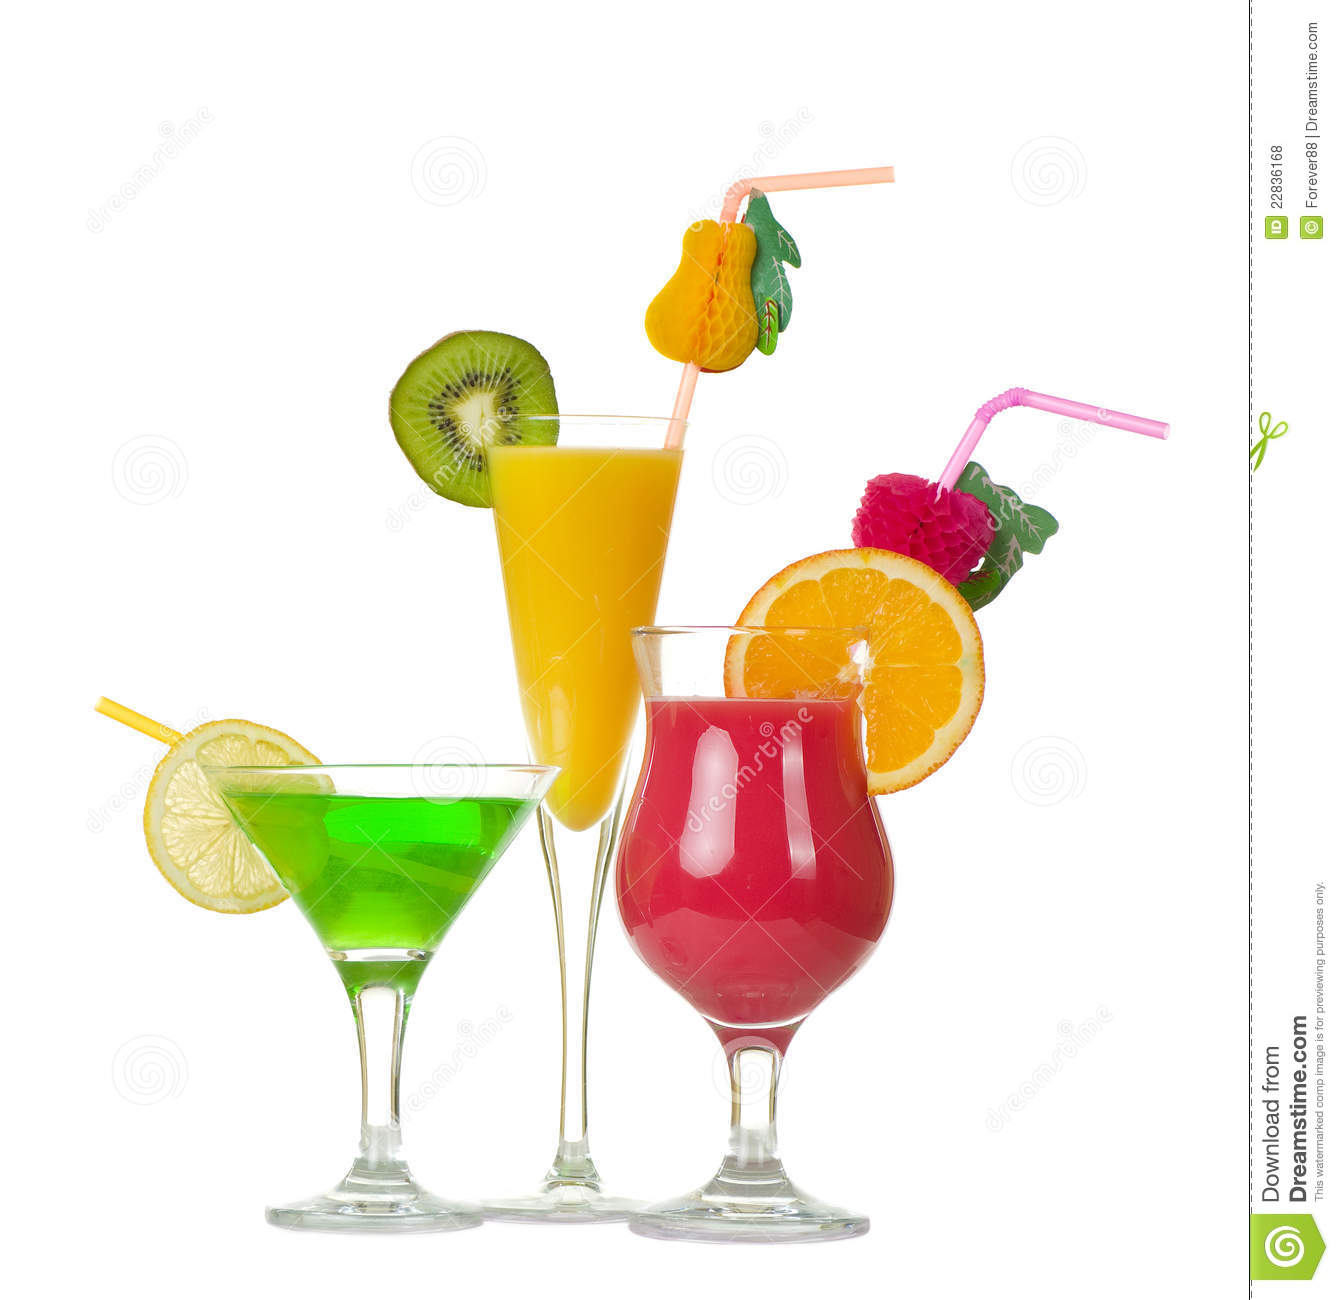 Tequila Sunrise Cocktail Royalty Free Stock Photos - Image: 22836168